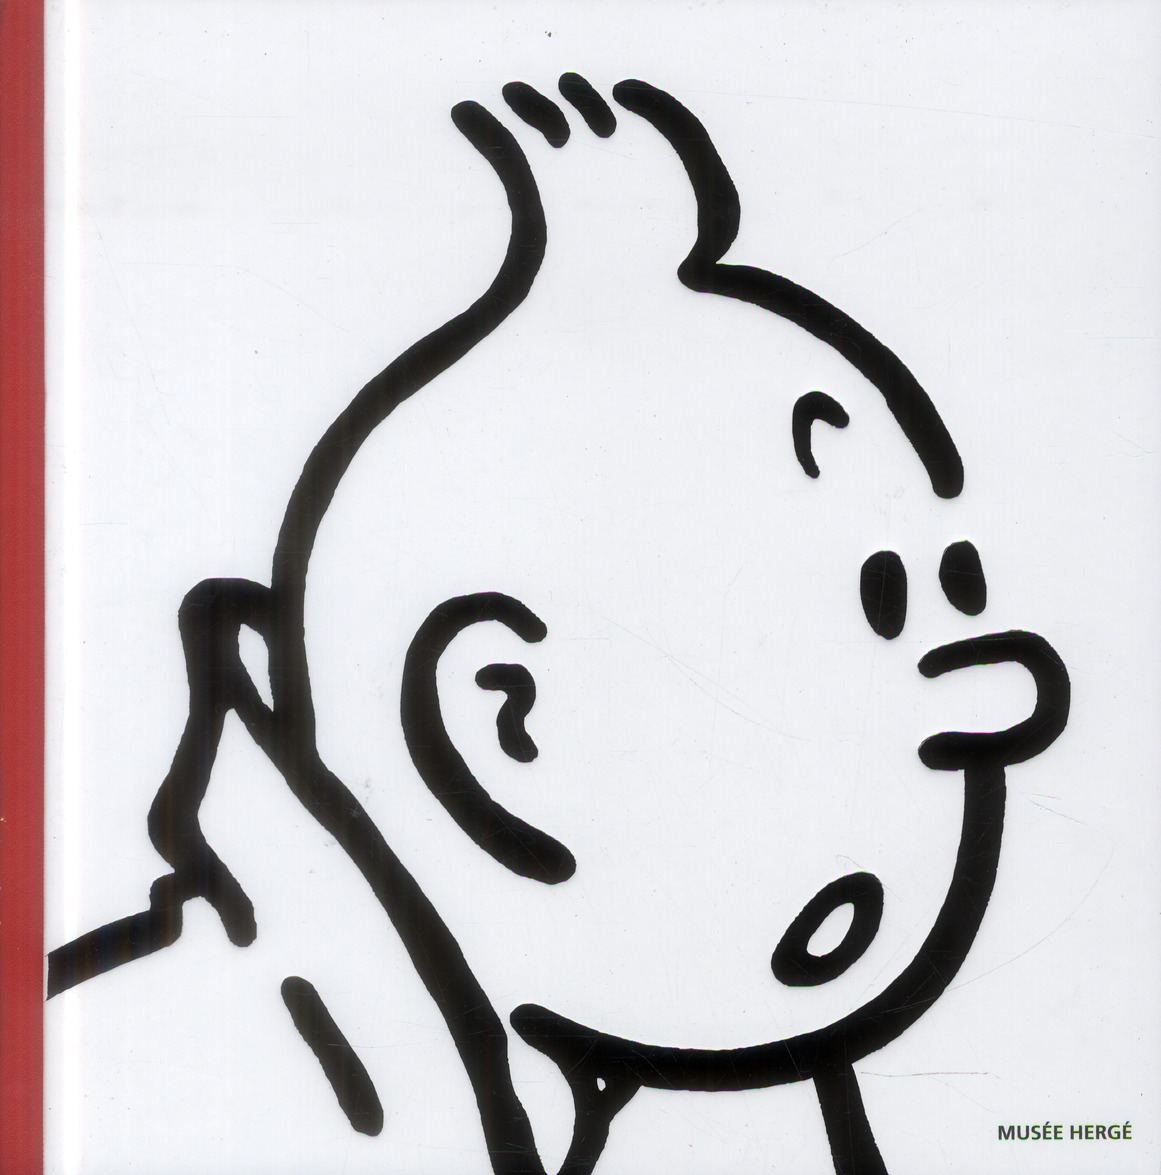 MUSEE HERGE - COLLECTION CUBE